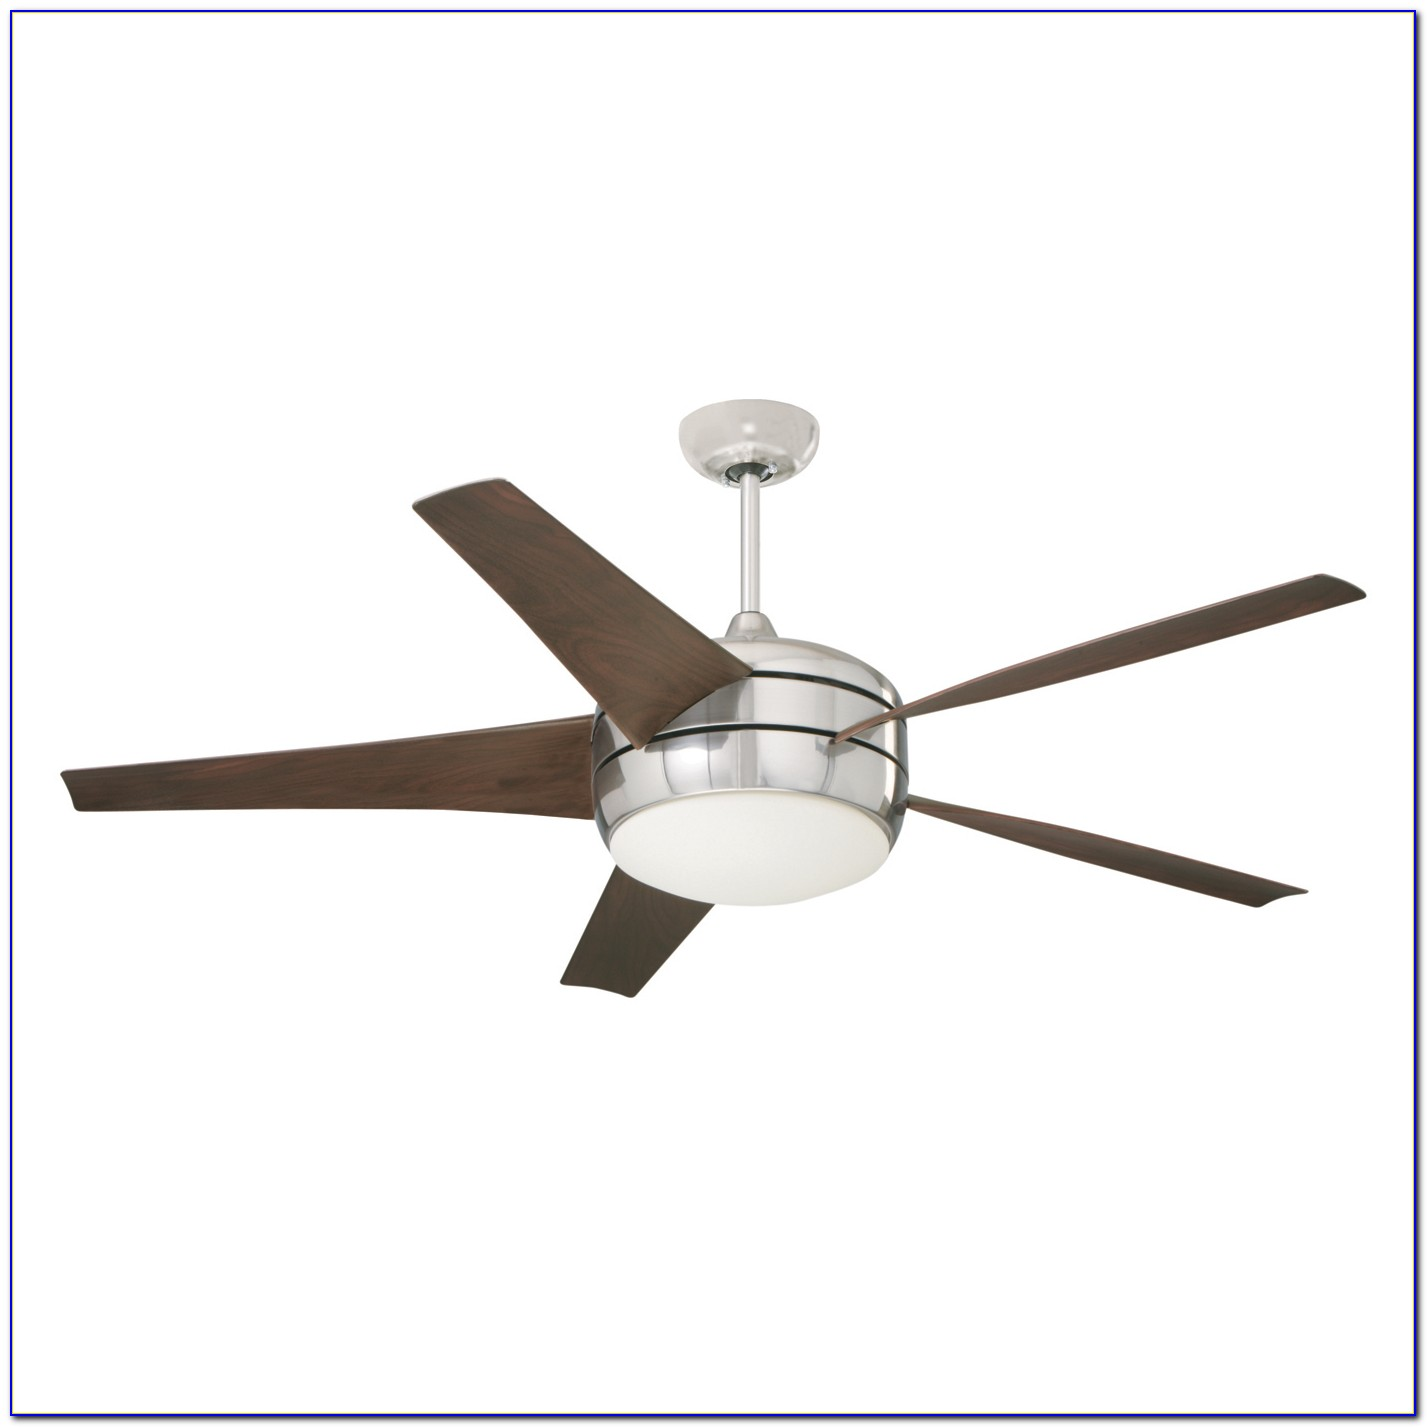 Emerson Luray Eco Ceiling Fan